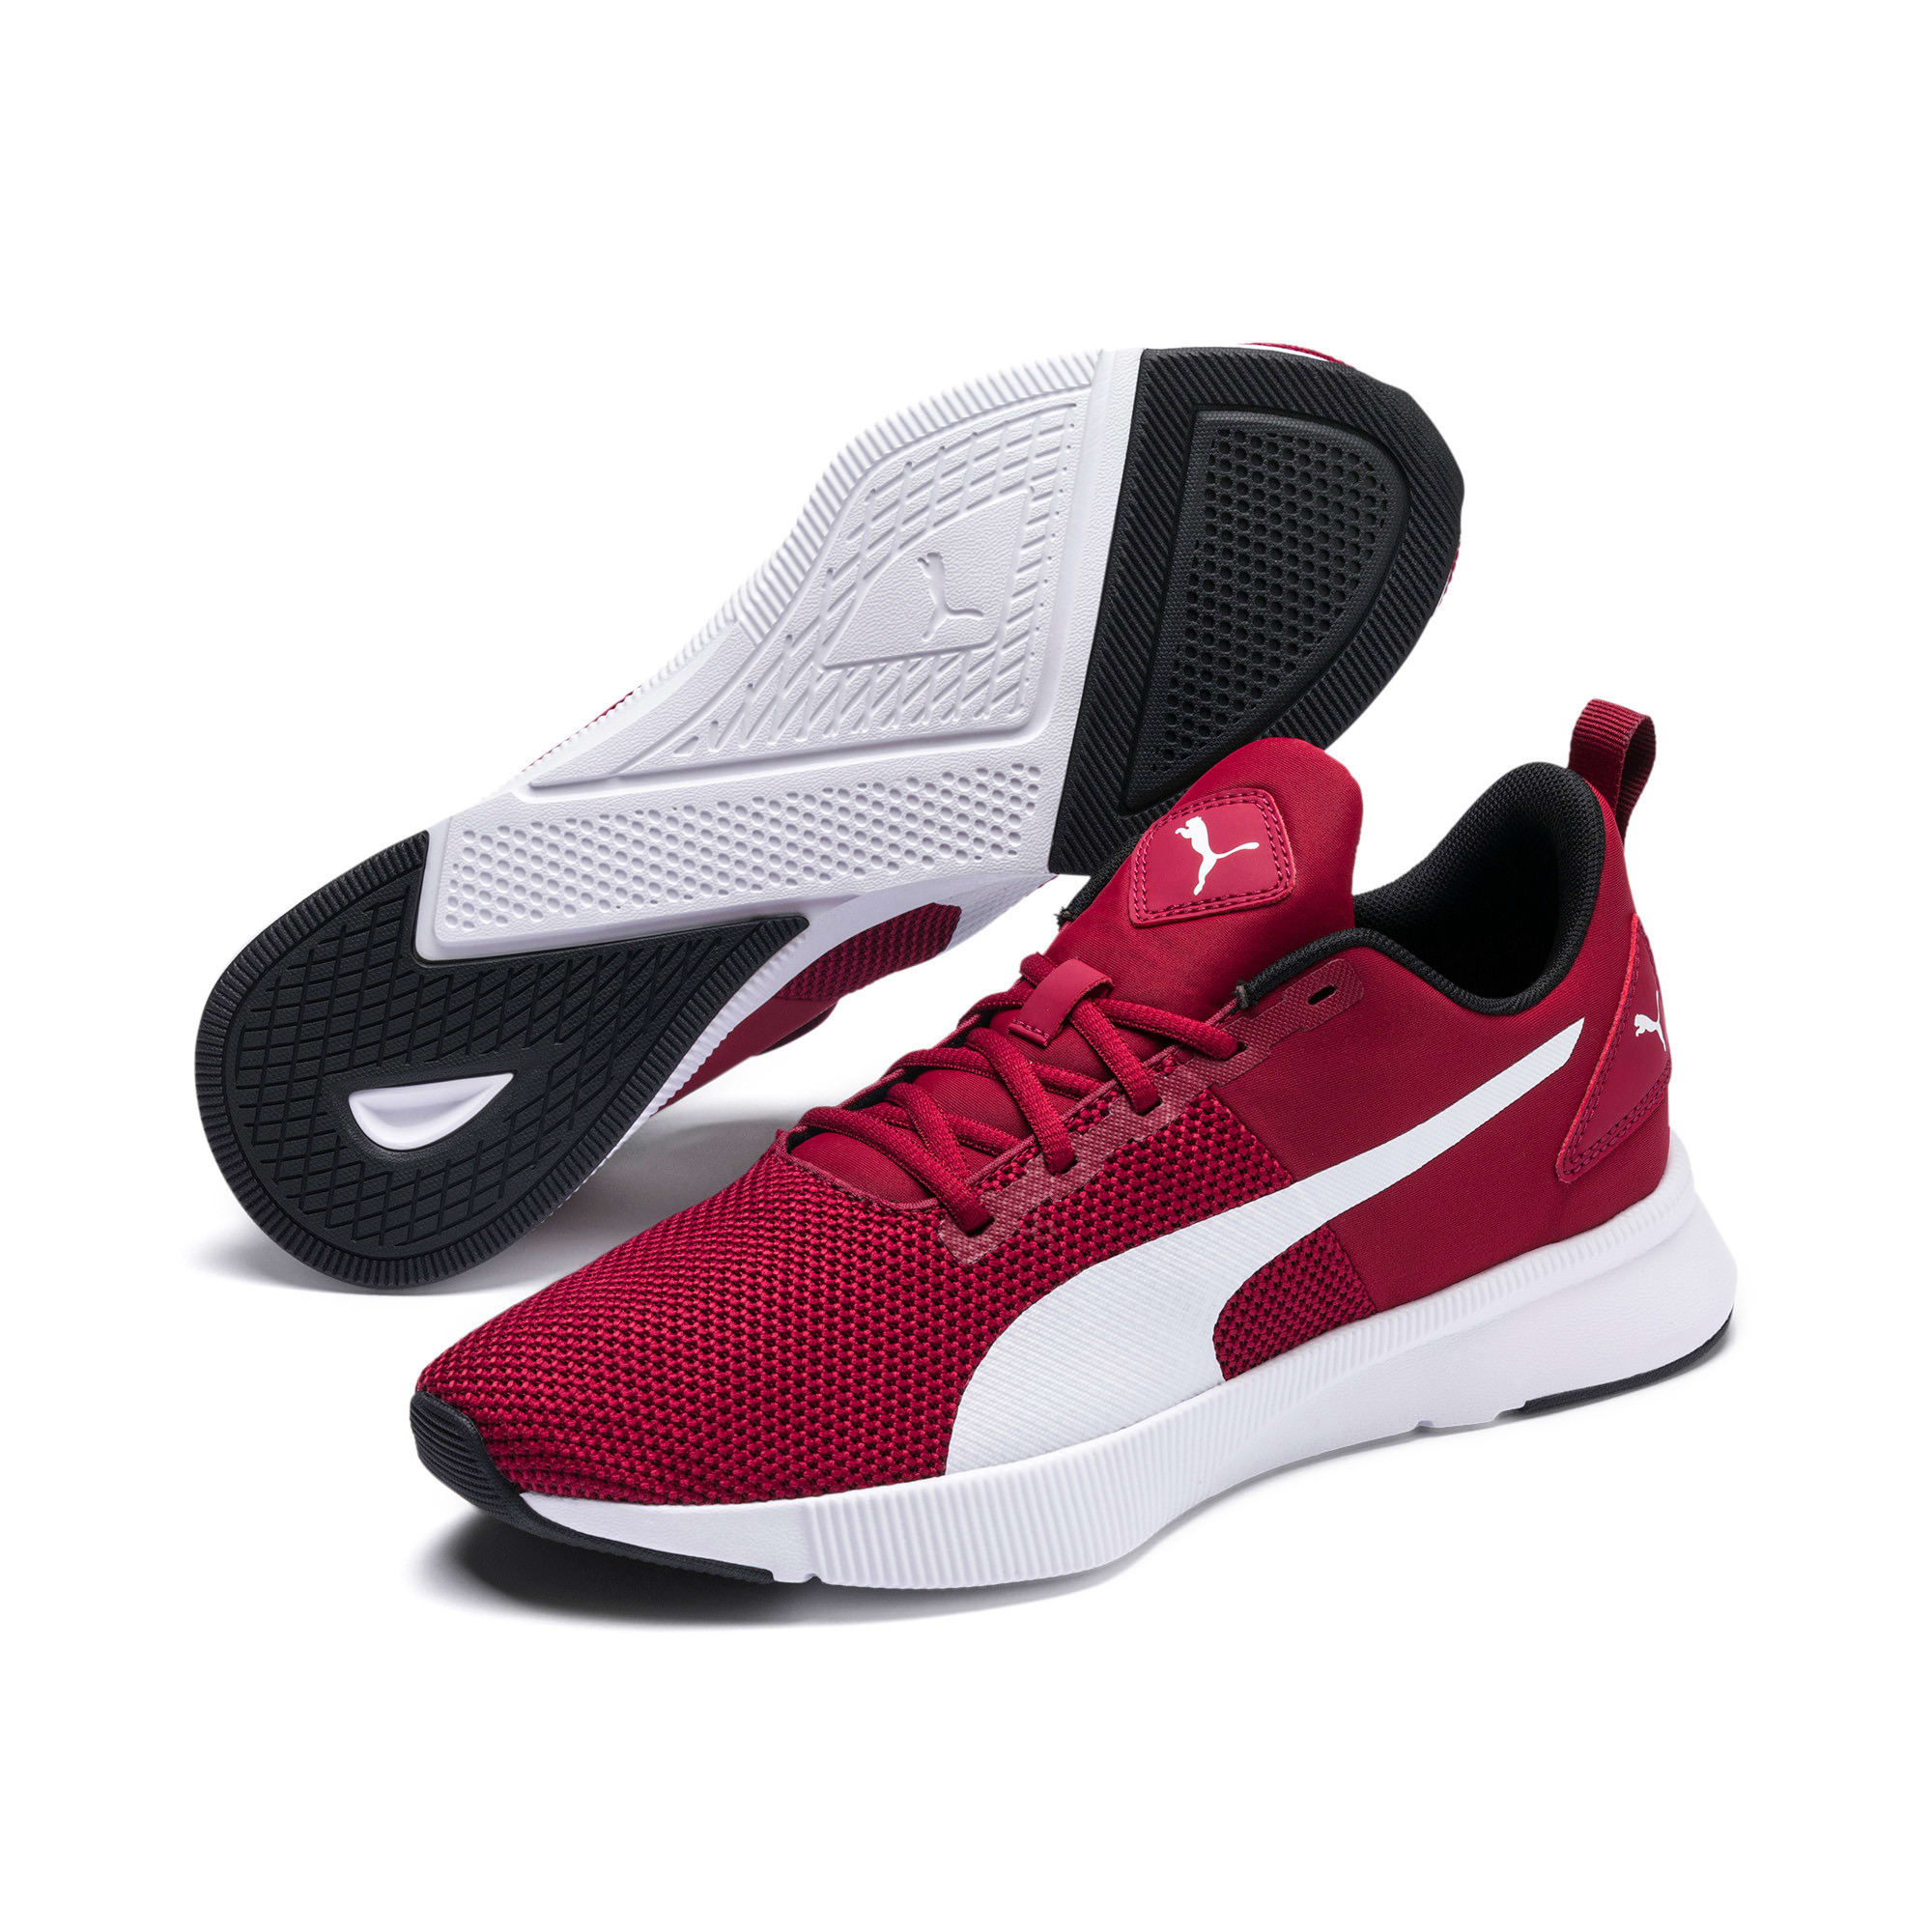 Thumbnail 2 of Flyer Runner Running Shoes, Rhubarb-Puma White, medium